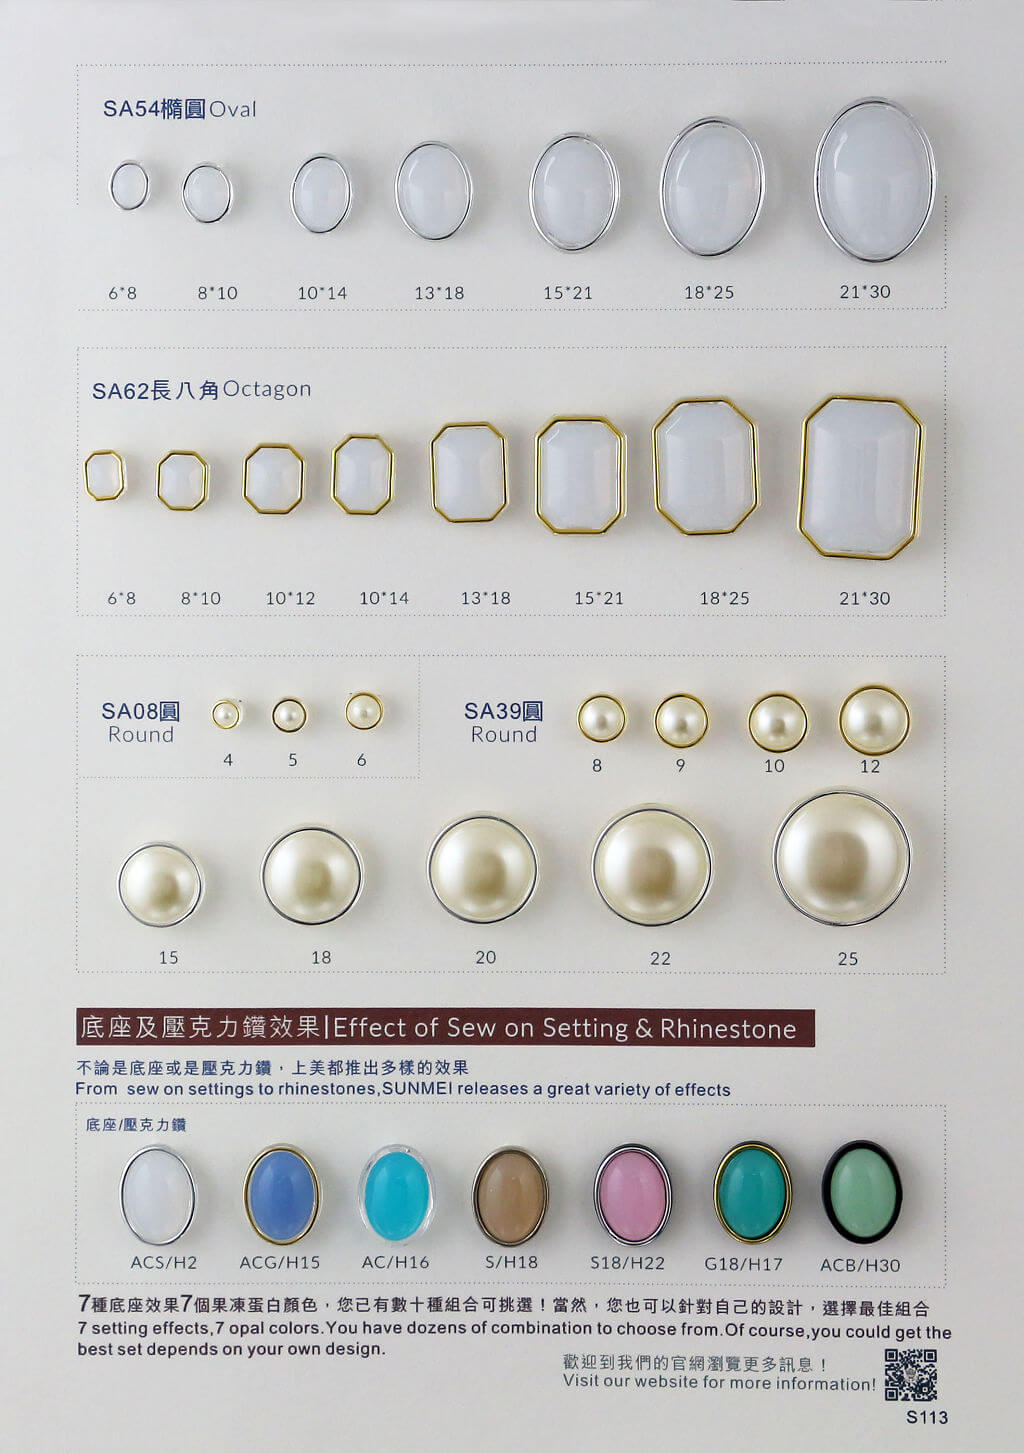 stones in sew on setting opal catalogue-S113